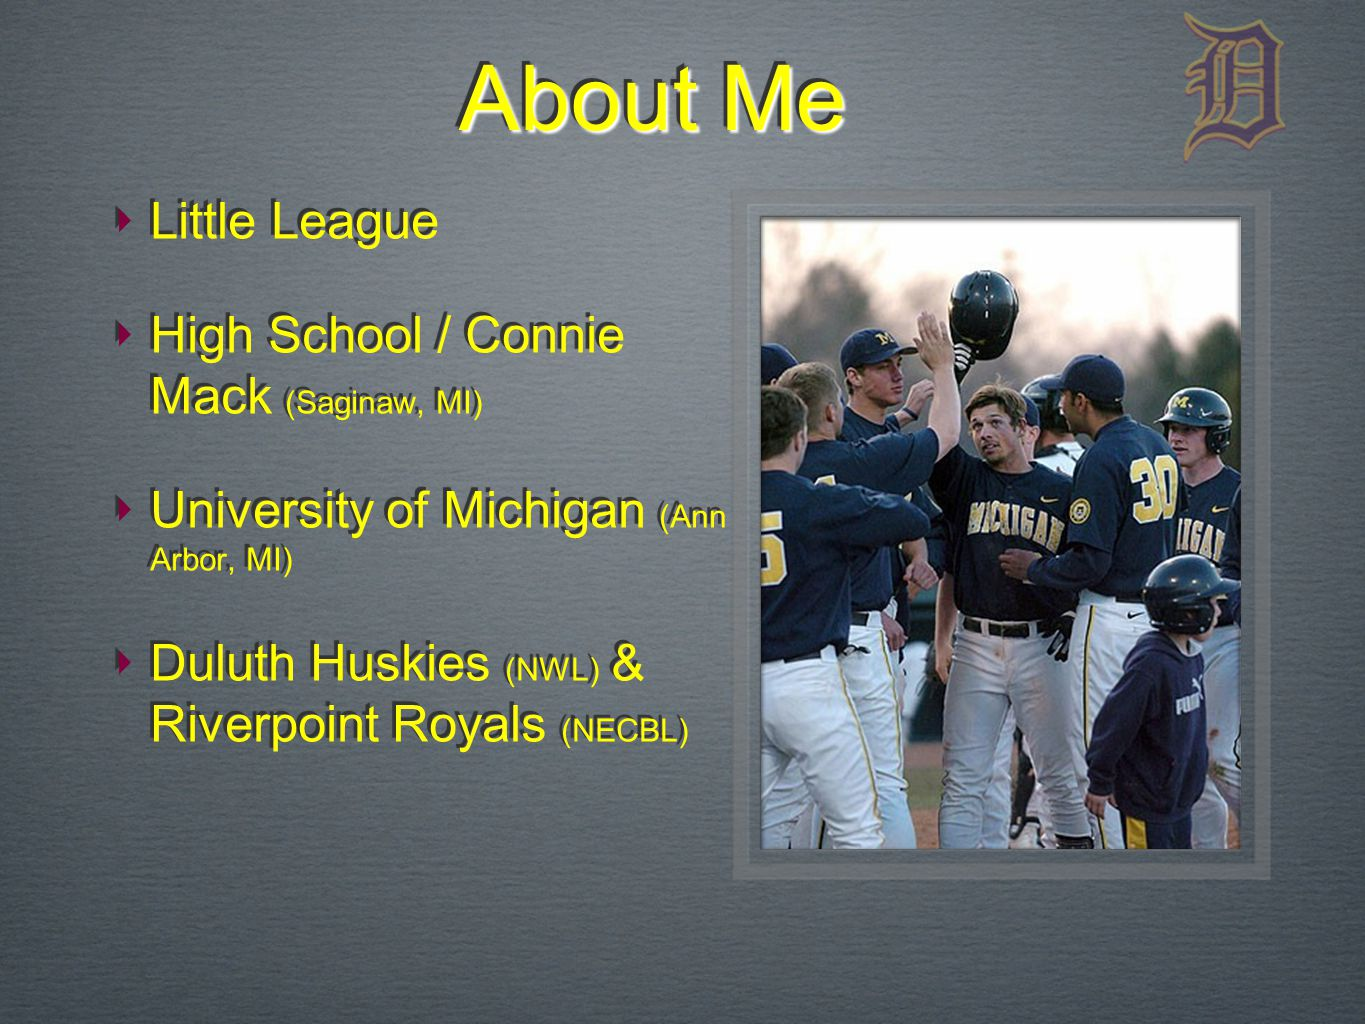 About Me ‣ Little League ‣ High School / Connie Mack (Saginaw, MI) ‣ University of Michigan (Ann Arbor, MI) ‣ Duluth Huskies (NWL) & Riverpoint Royals (NECBL) ‣ Little League ‣ High School / Connie Mack (Saginaw, MI) ‣ University of Michigan (Ann Arbor, MI) ‣ Duluth Huskies (NWL) & Riverpoint Royals (NECBL)